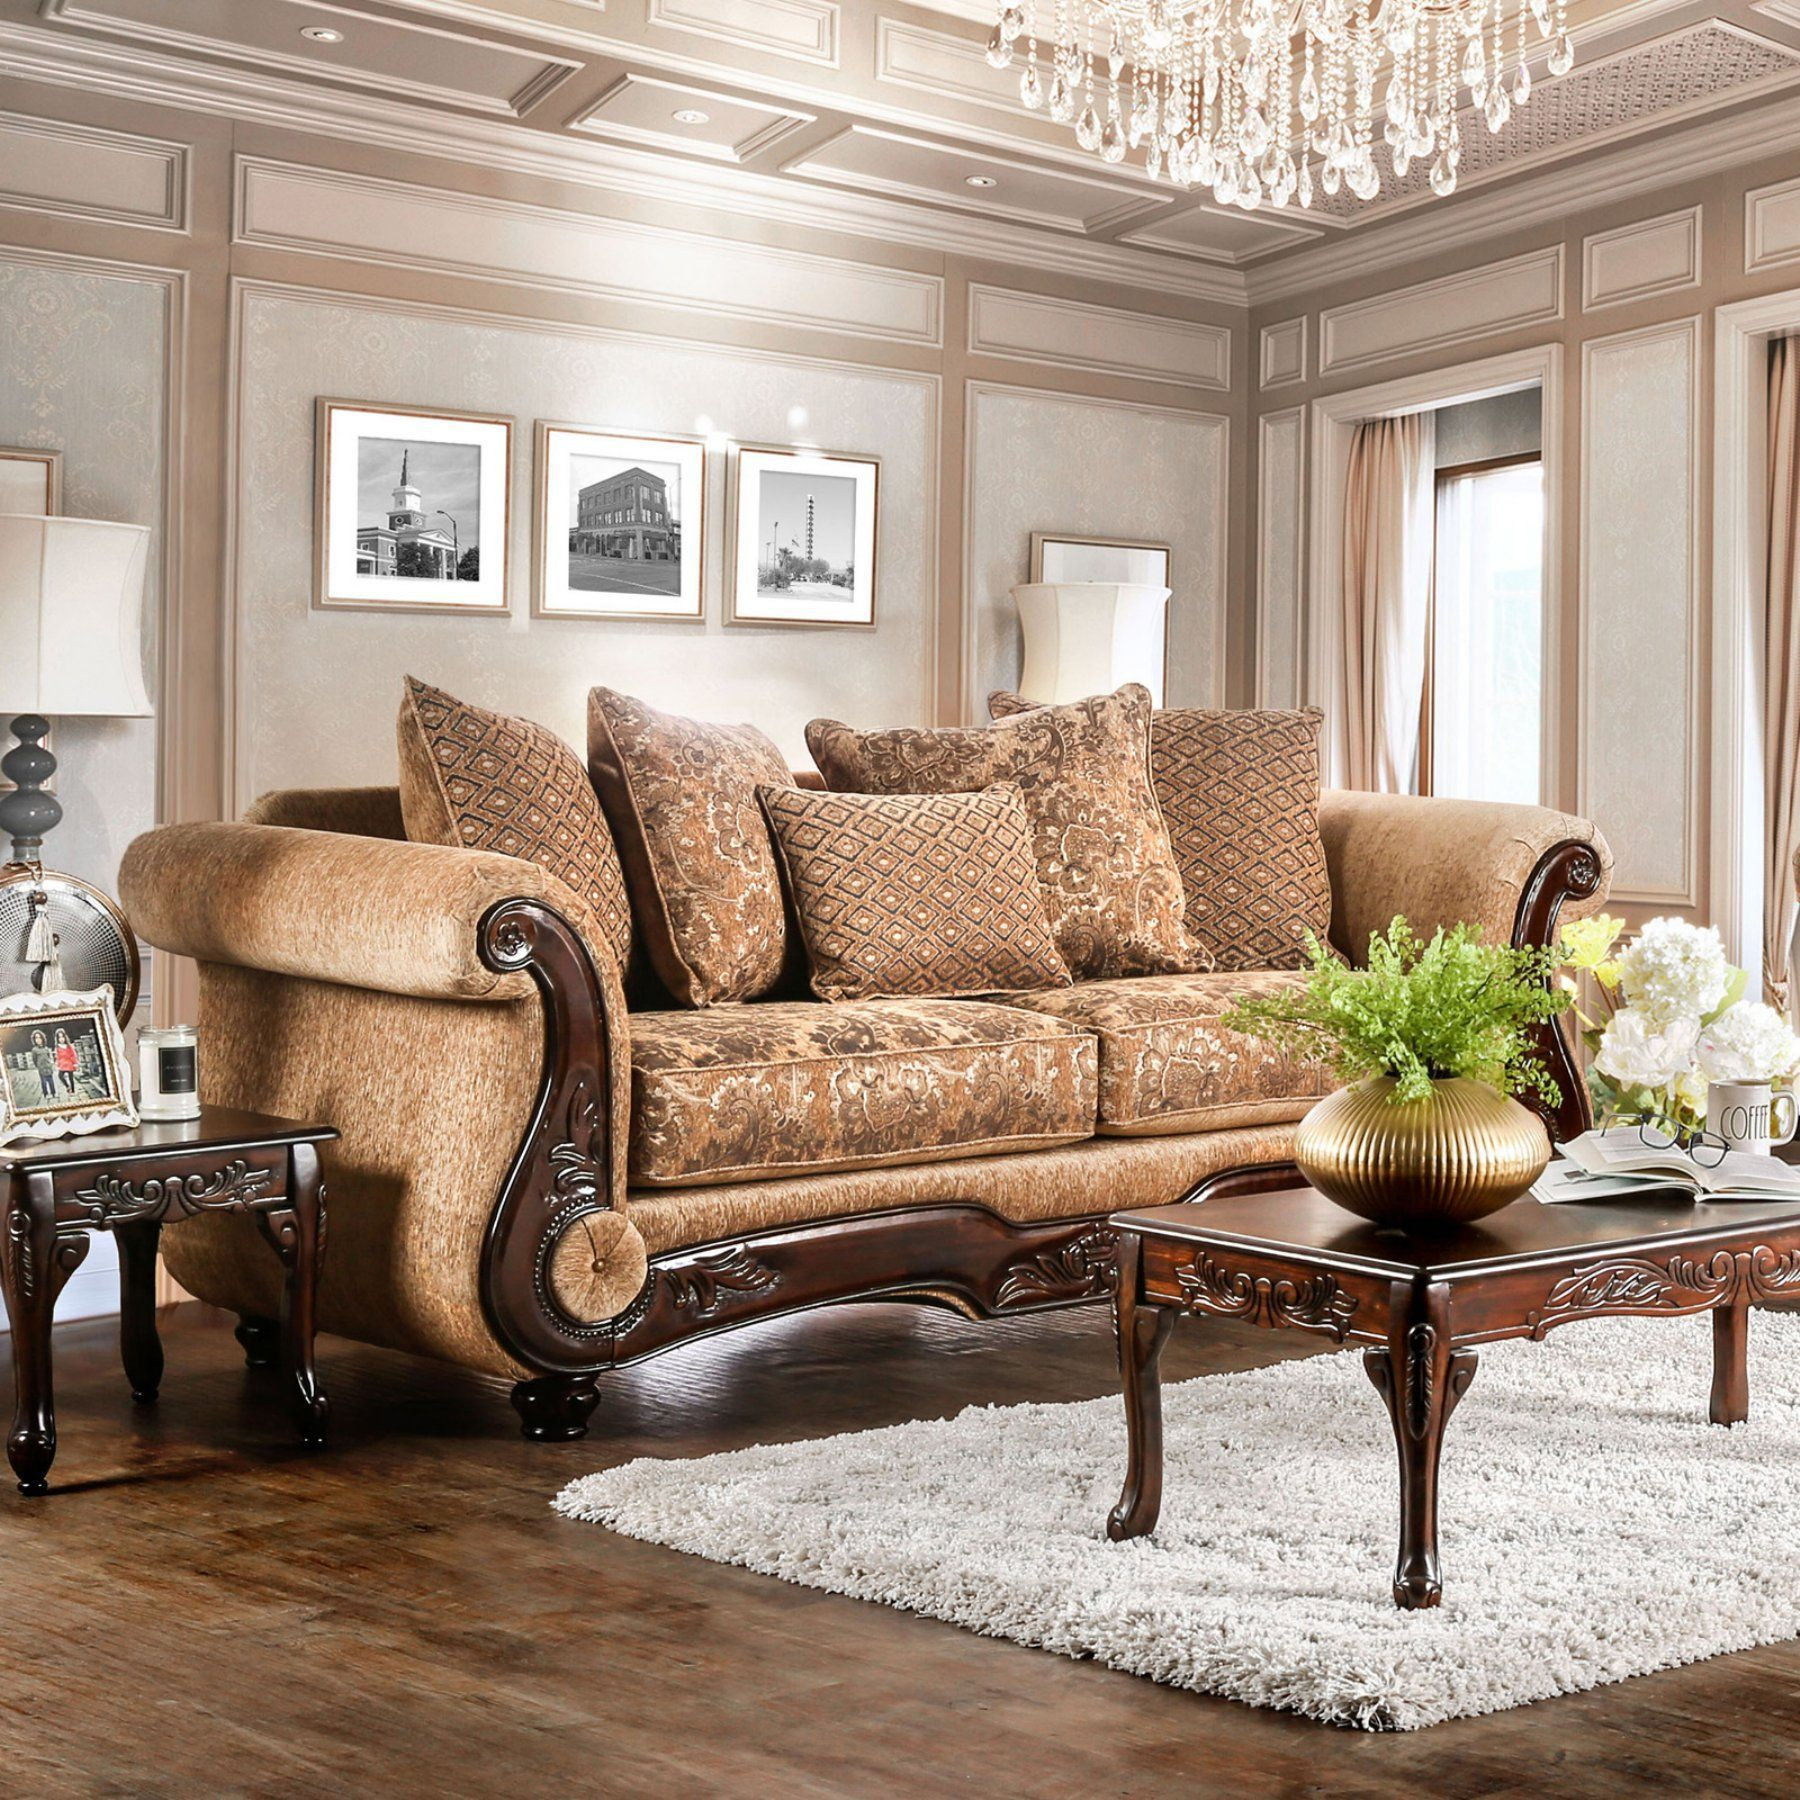 Furniture of america adonnis traditional style printed fabric sofa idf 6407 sf